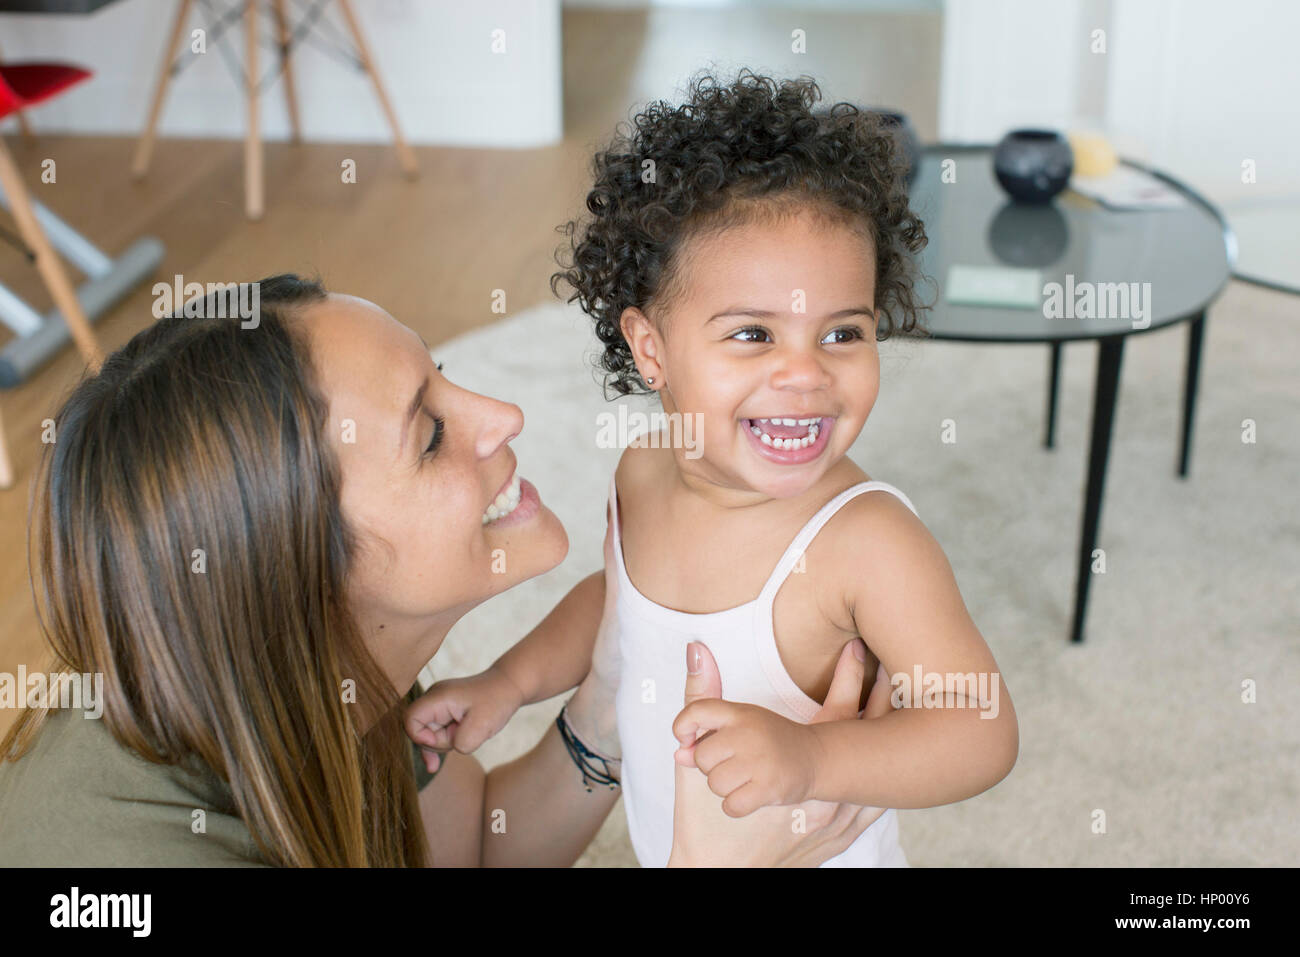 Mother with toddler daughter - Stock Image